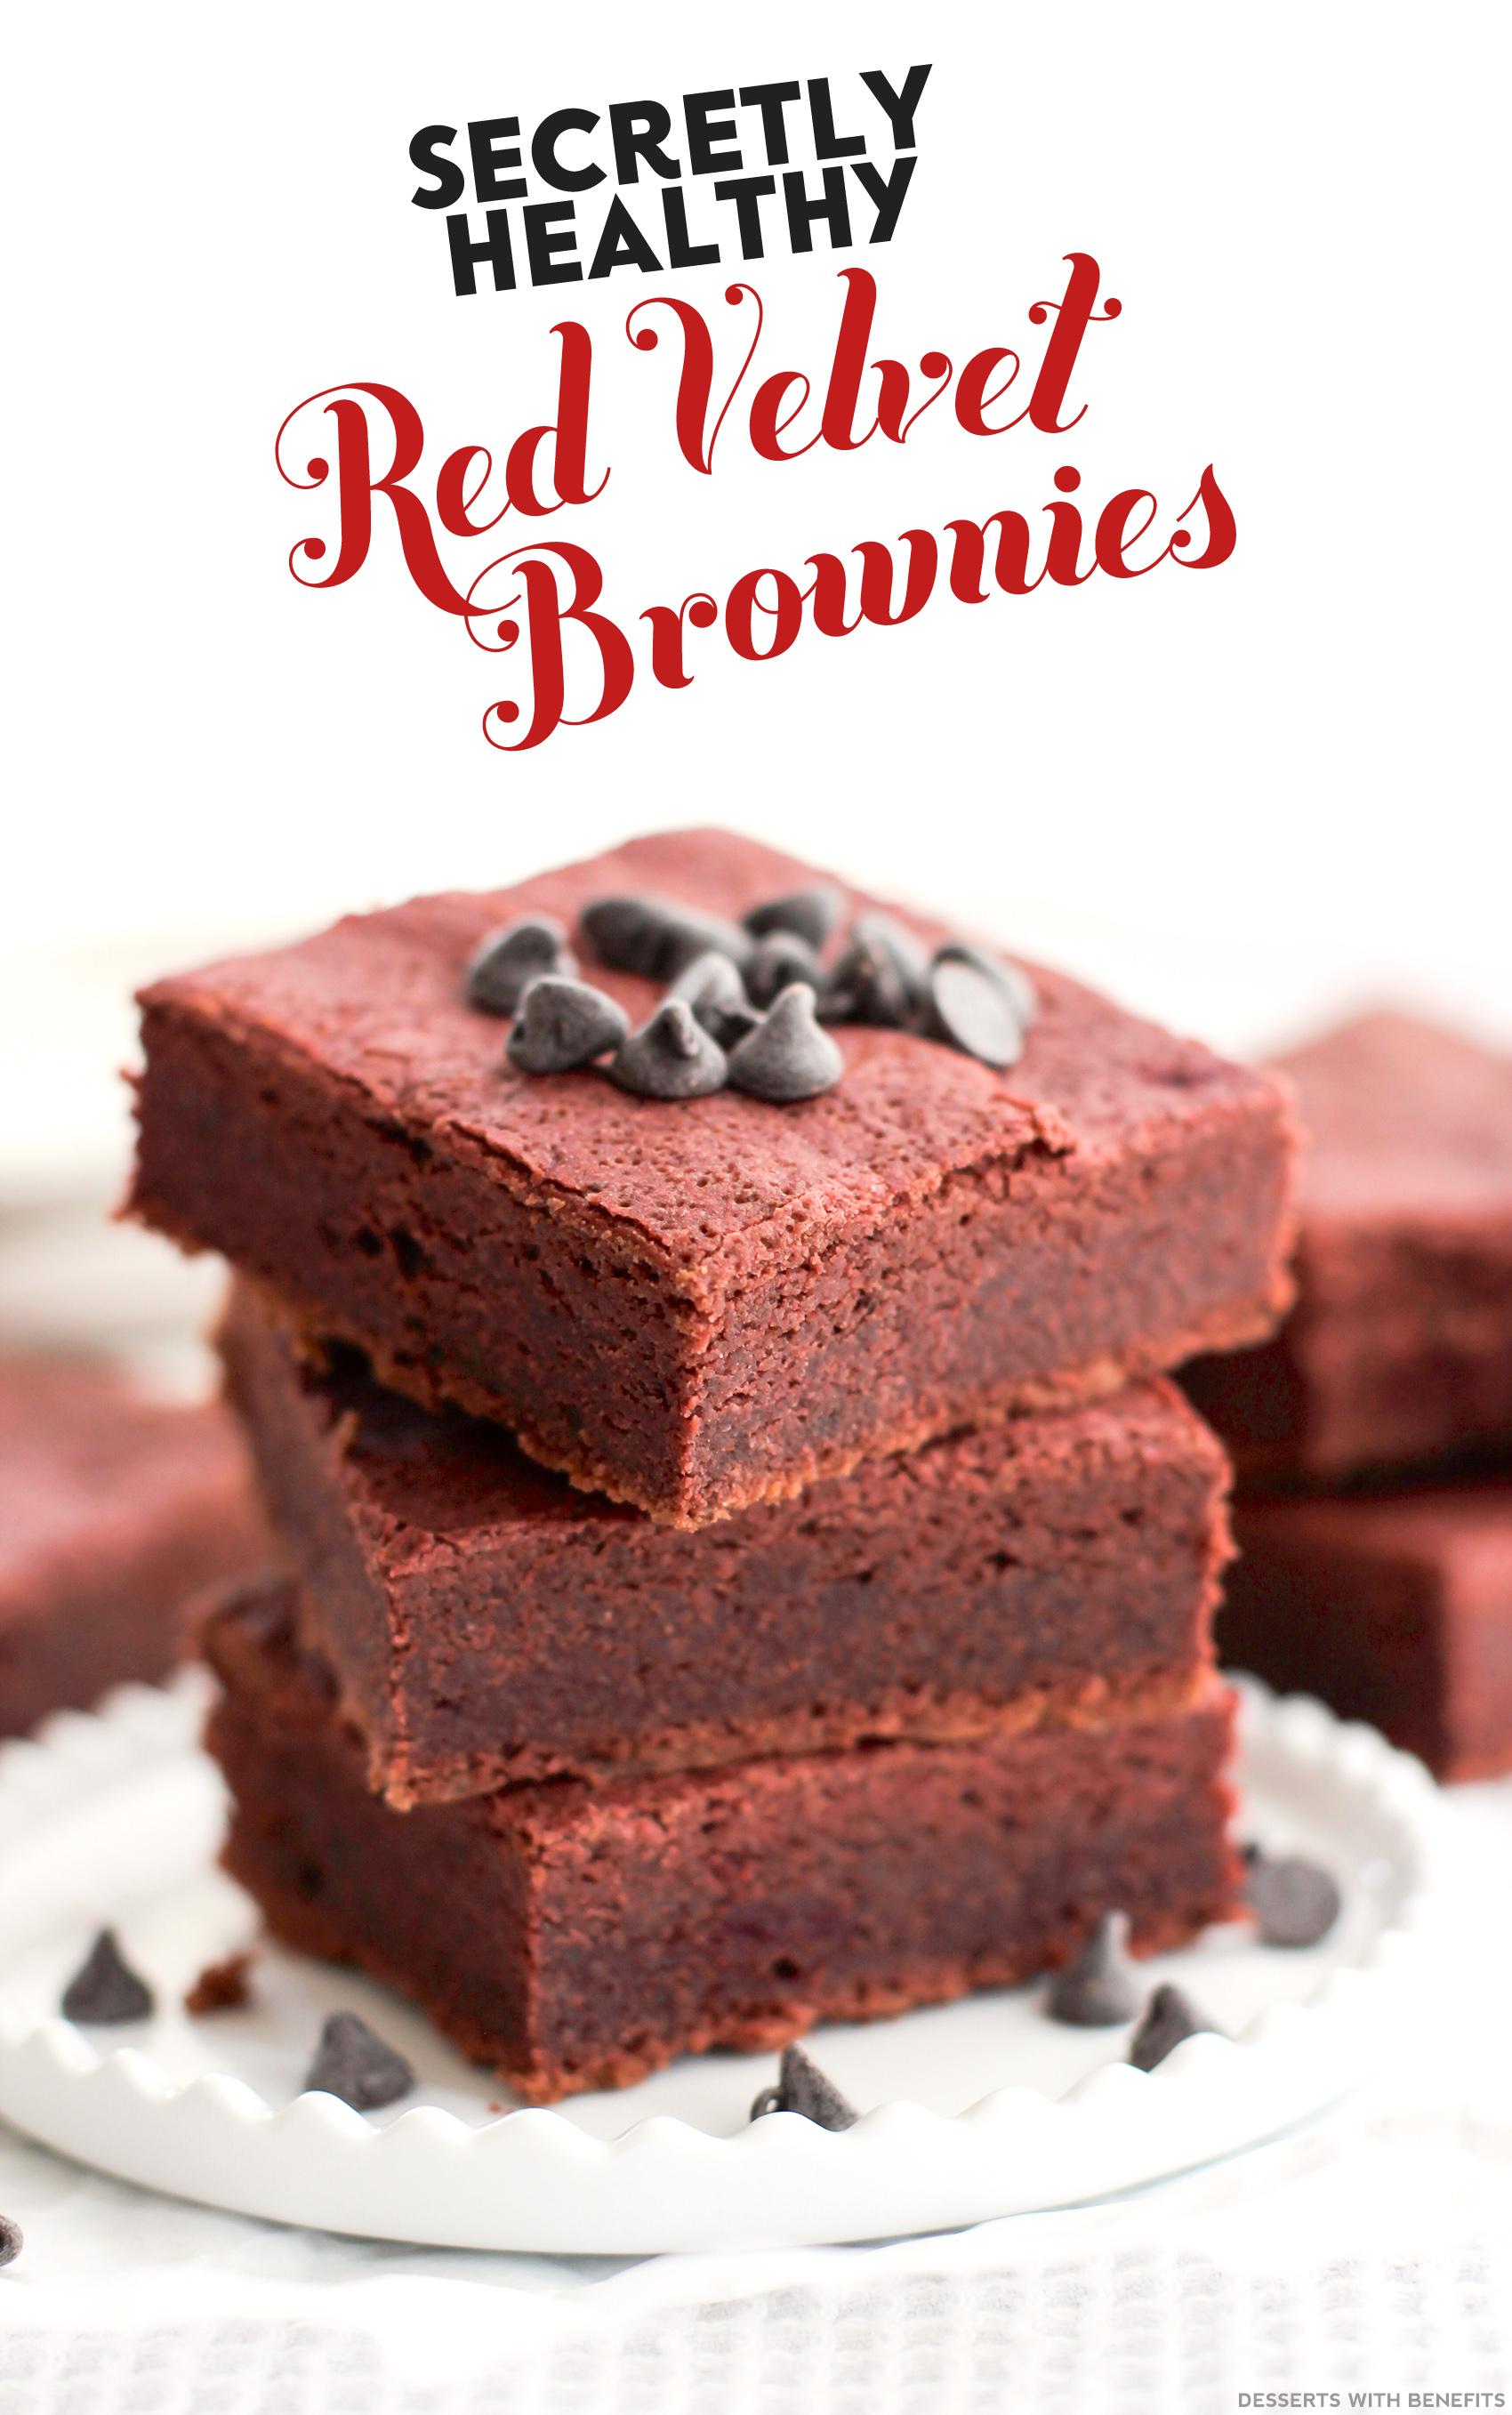 Healthy Red Velvet Brownies (refined sugar free, gluten free, vegan) - Healthy Dessert Recipes at Desserts with Benefits